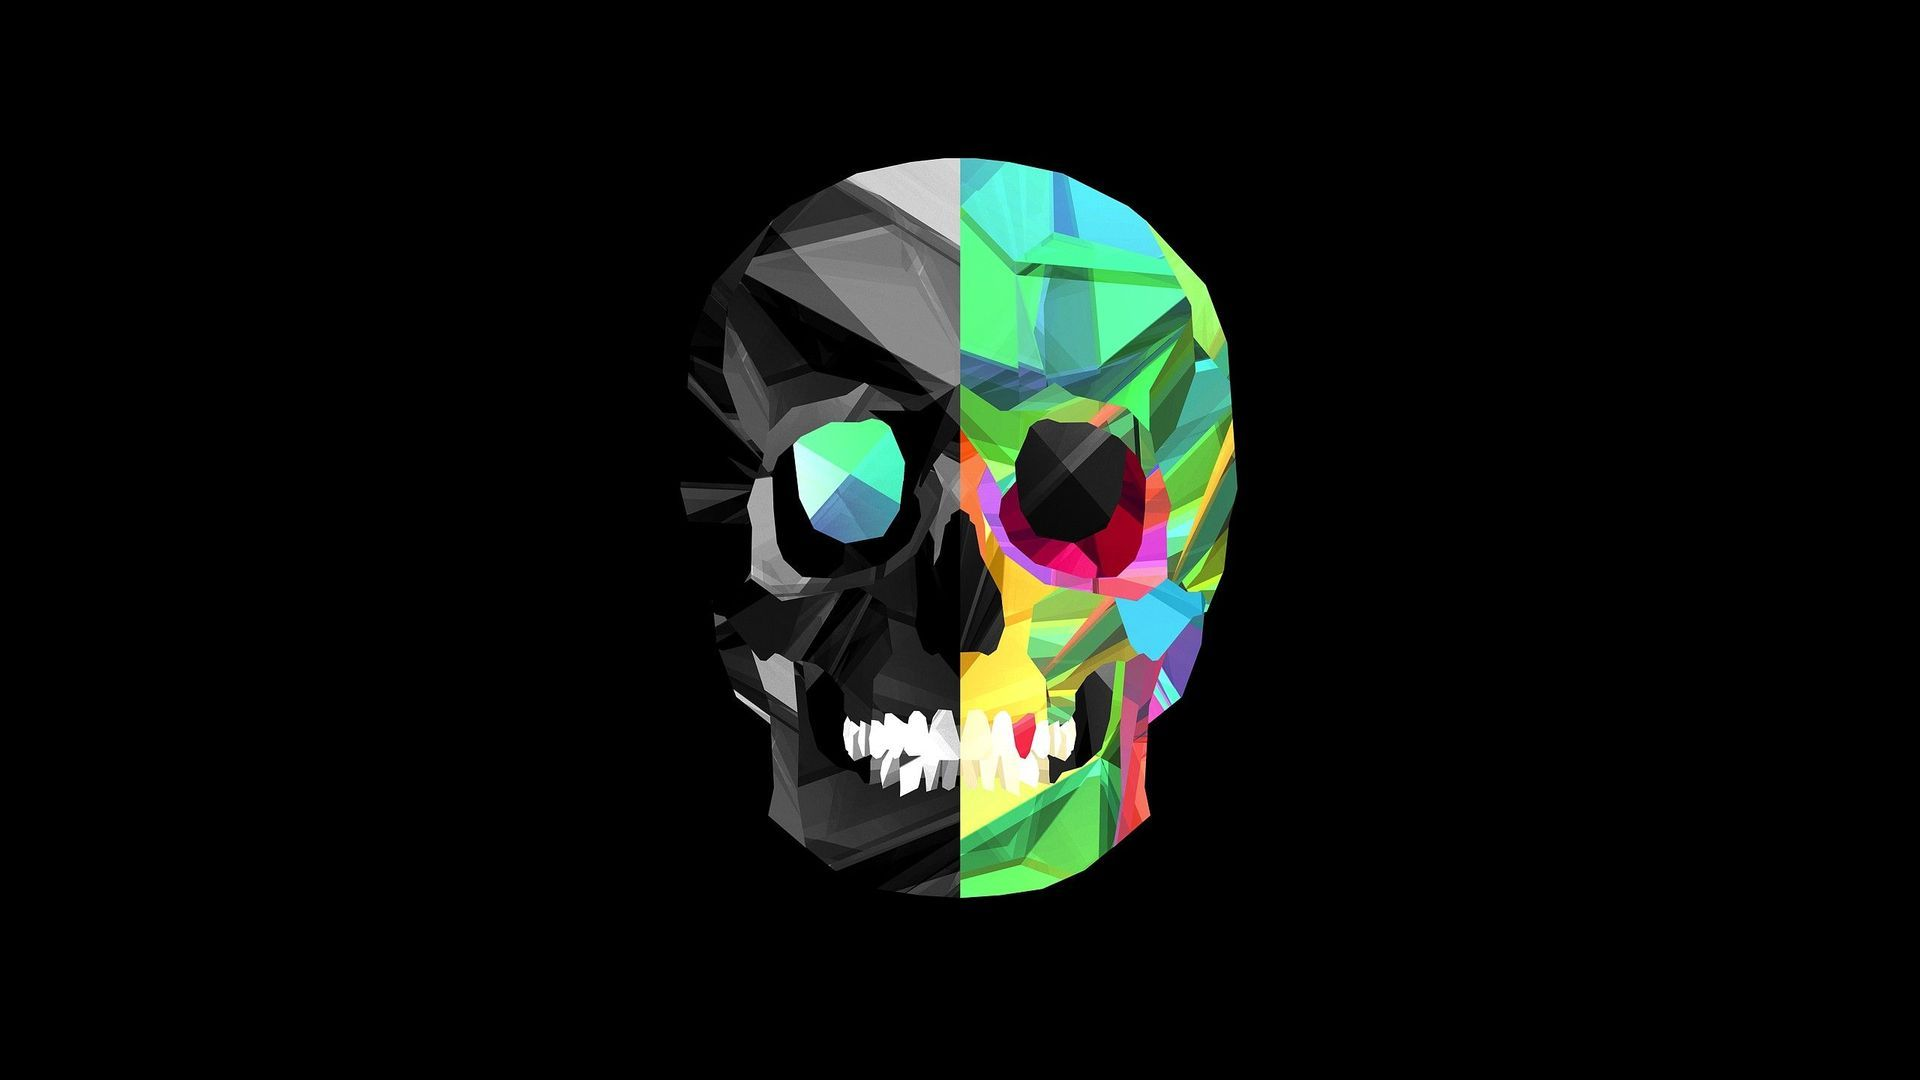 Skull Wallpapers High Quality Resolution Is Cool Wallpapers I